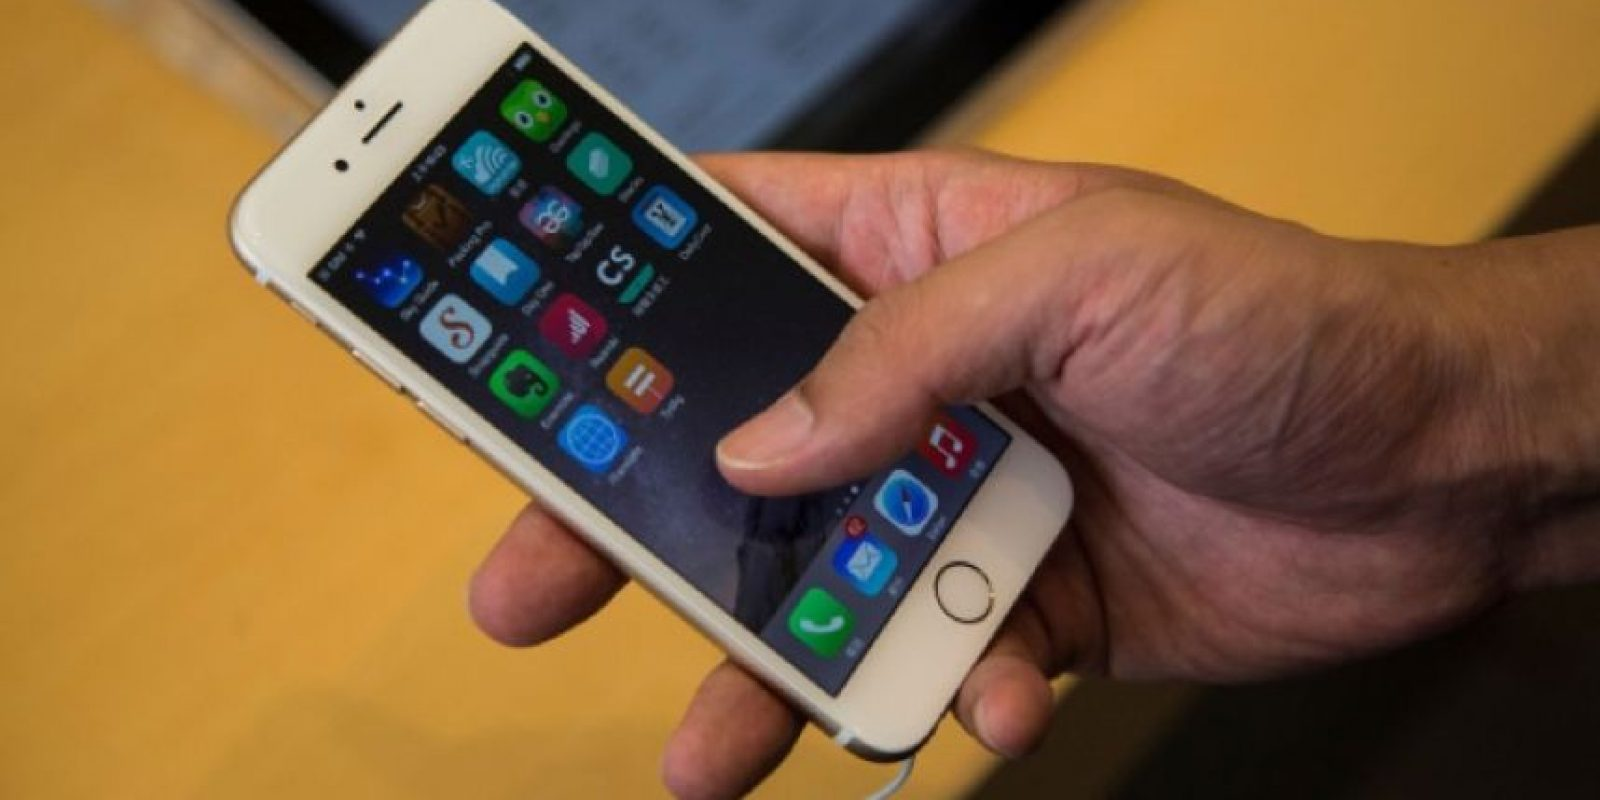 El iPhone muestra su resistencia. Foto: Getty Images